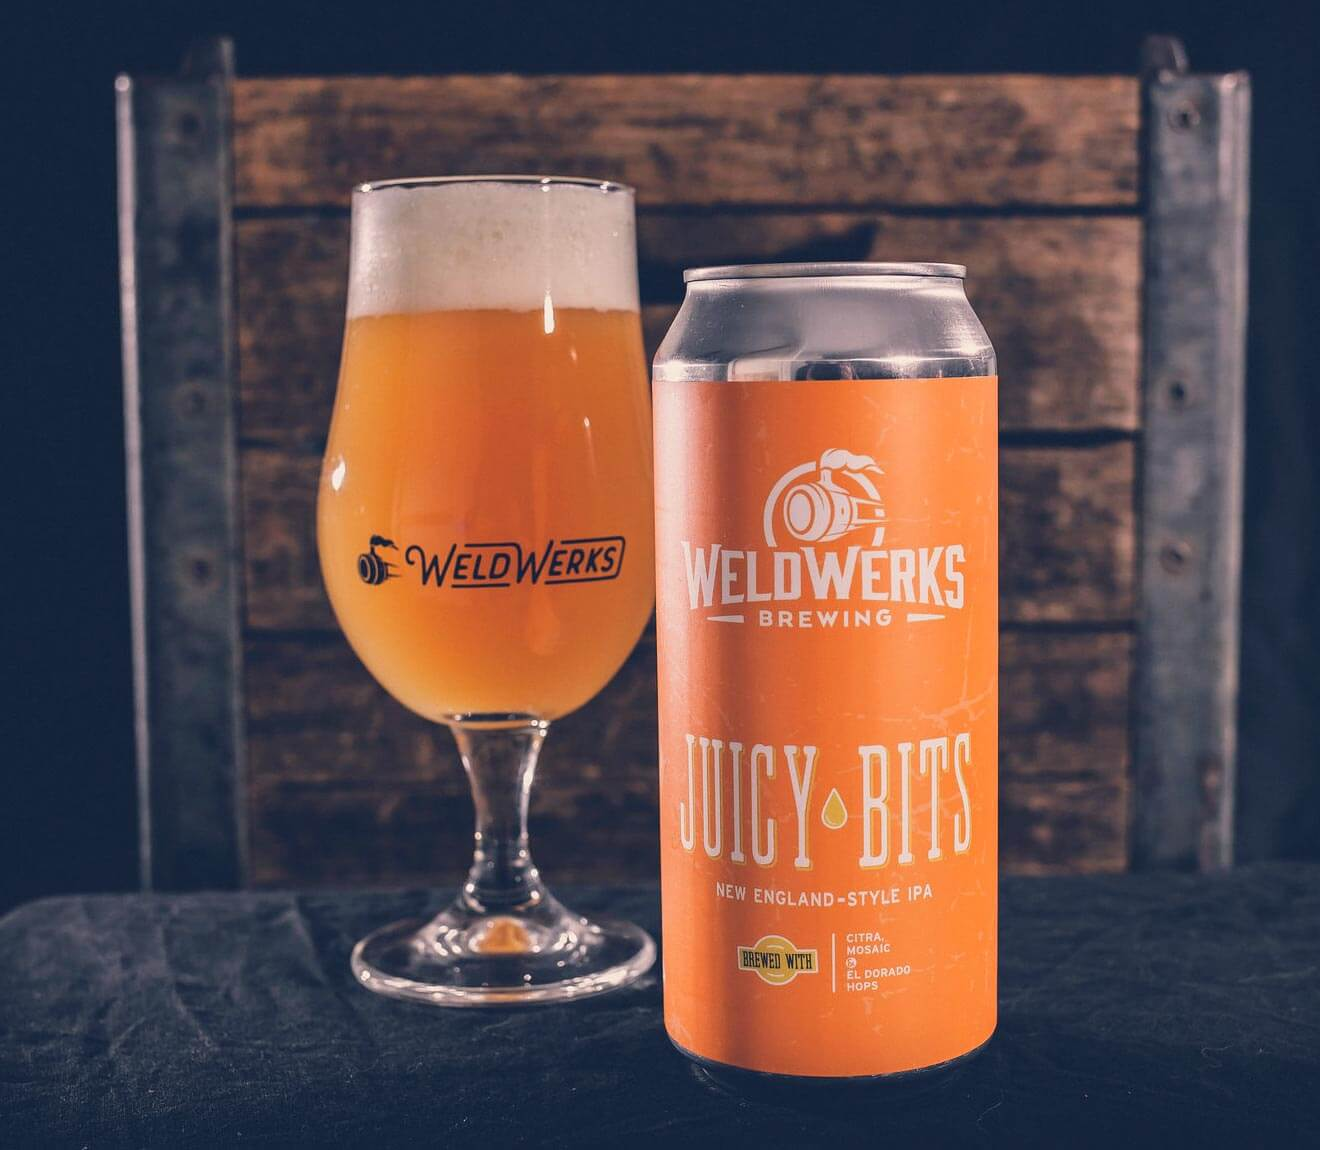 WeldWerks Juicy Bits, glass pour and can on table